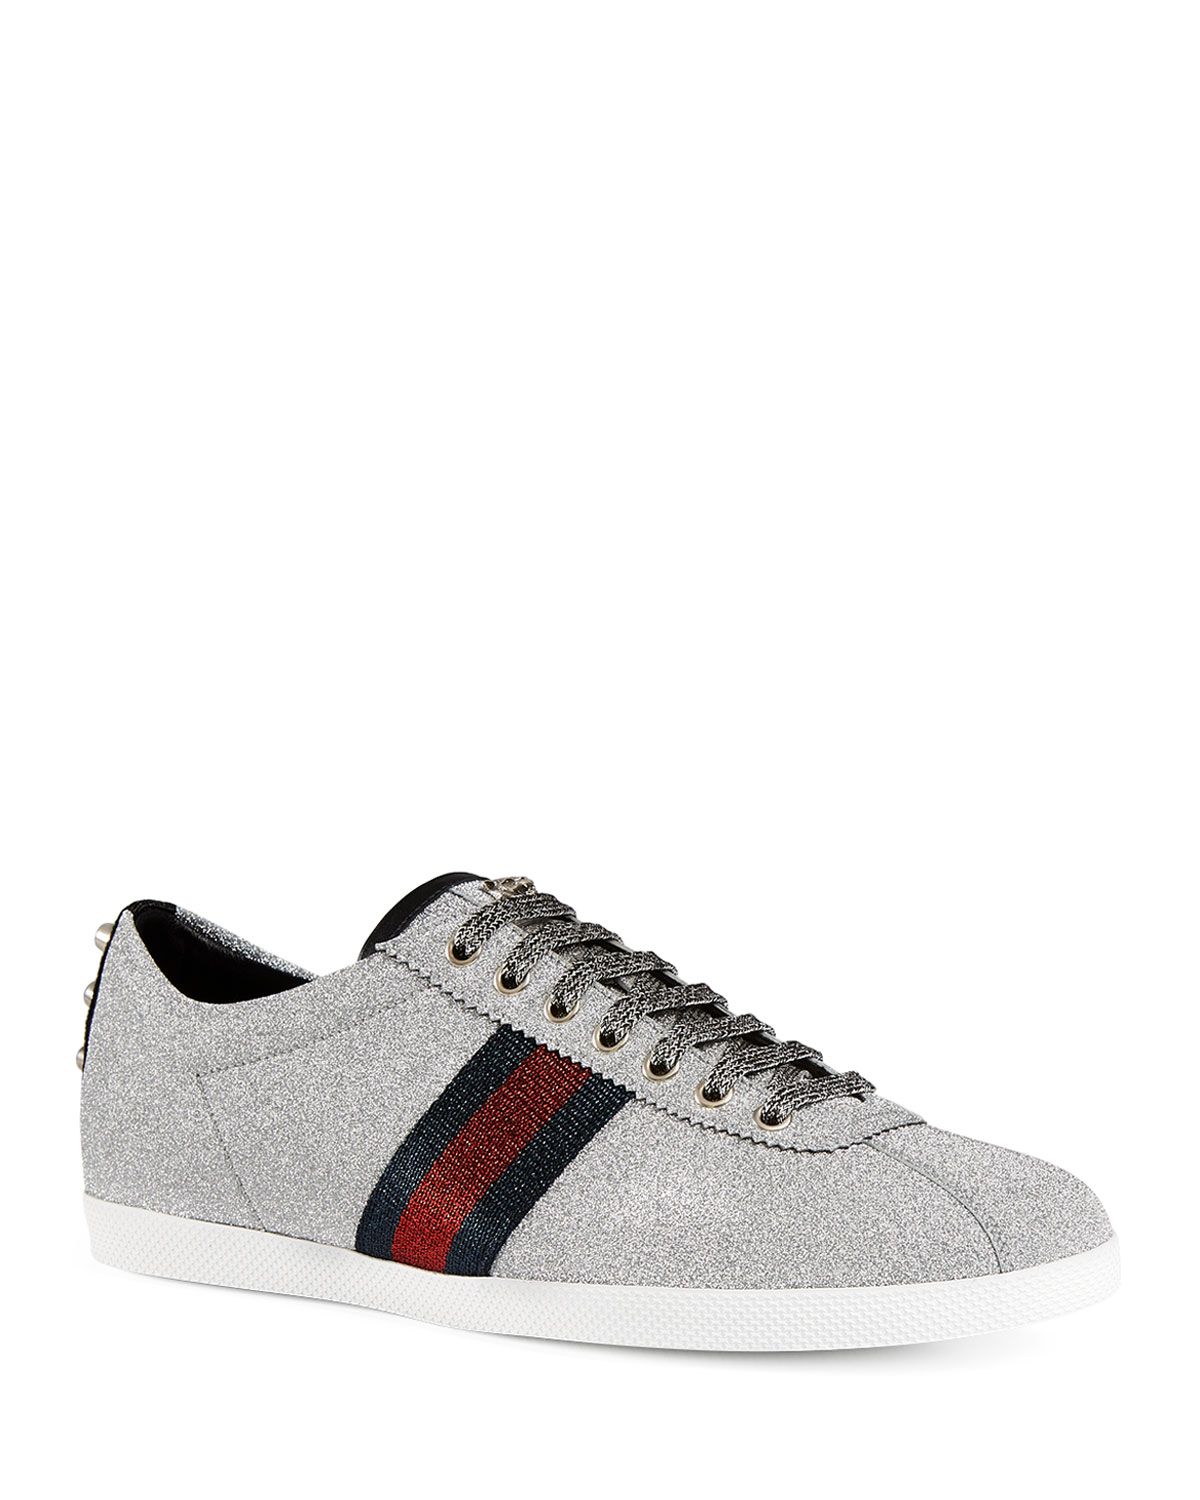 3fc10223fe14 Gucci Men s Bambi Web Low-Top Sneakers with Stud Detail